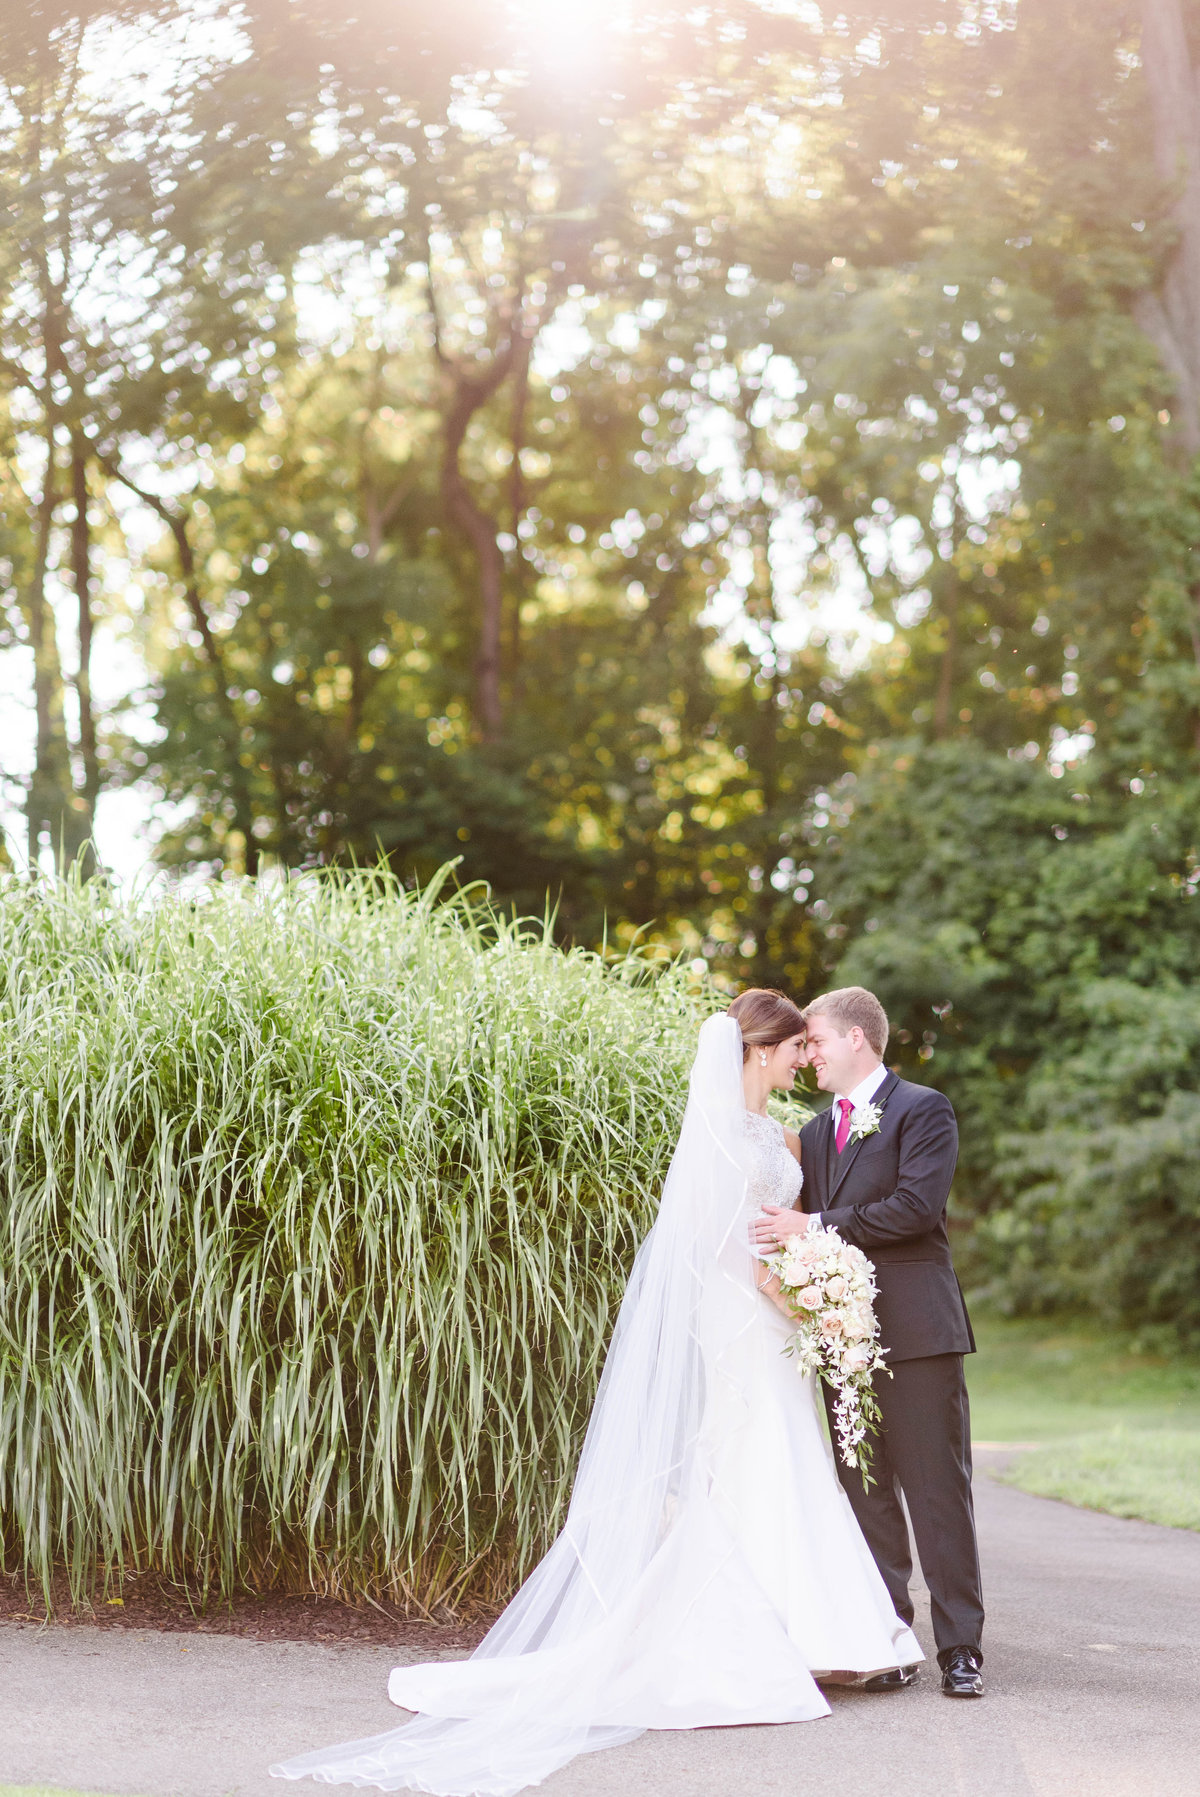 MB-valleybrooke-country-club-wedding-photos-111